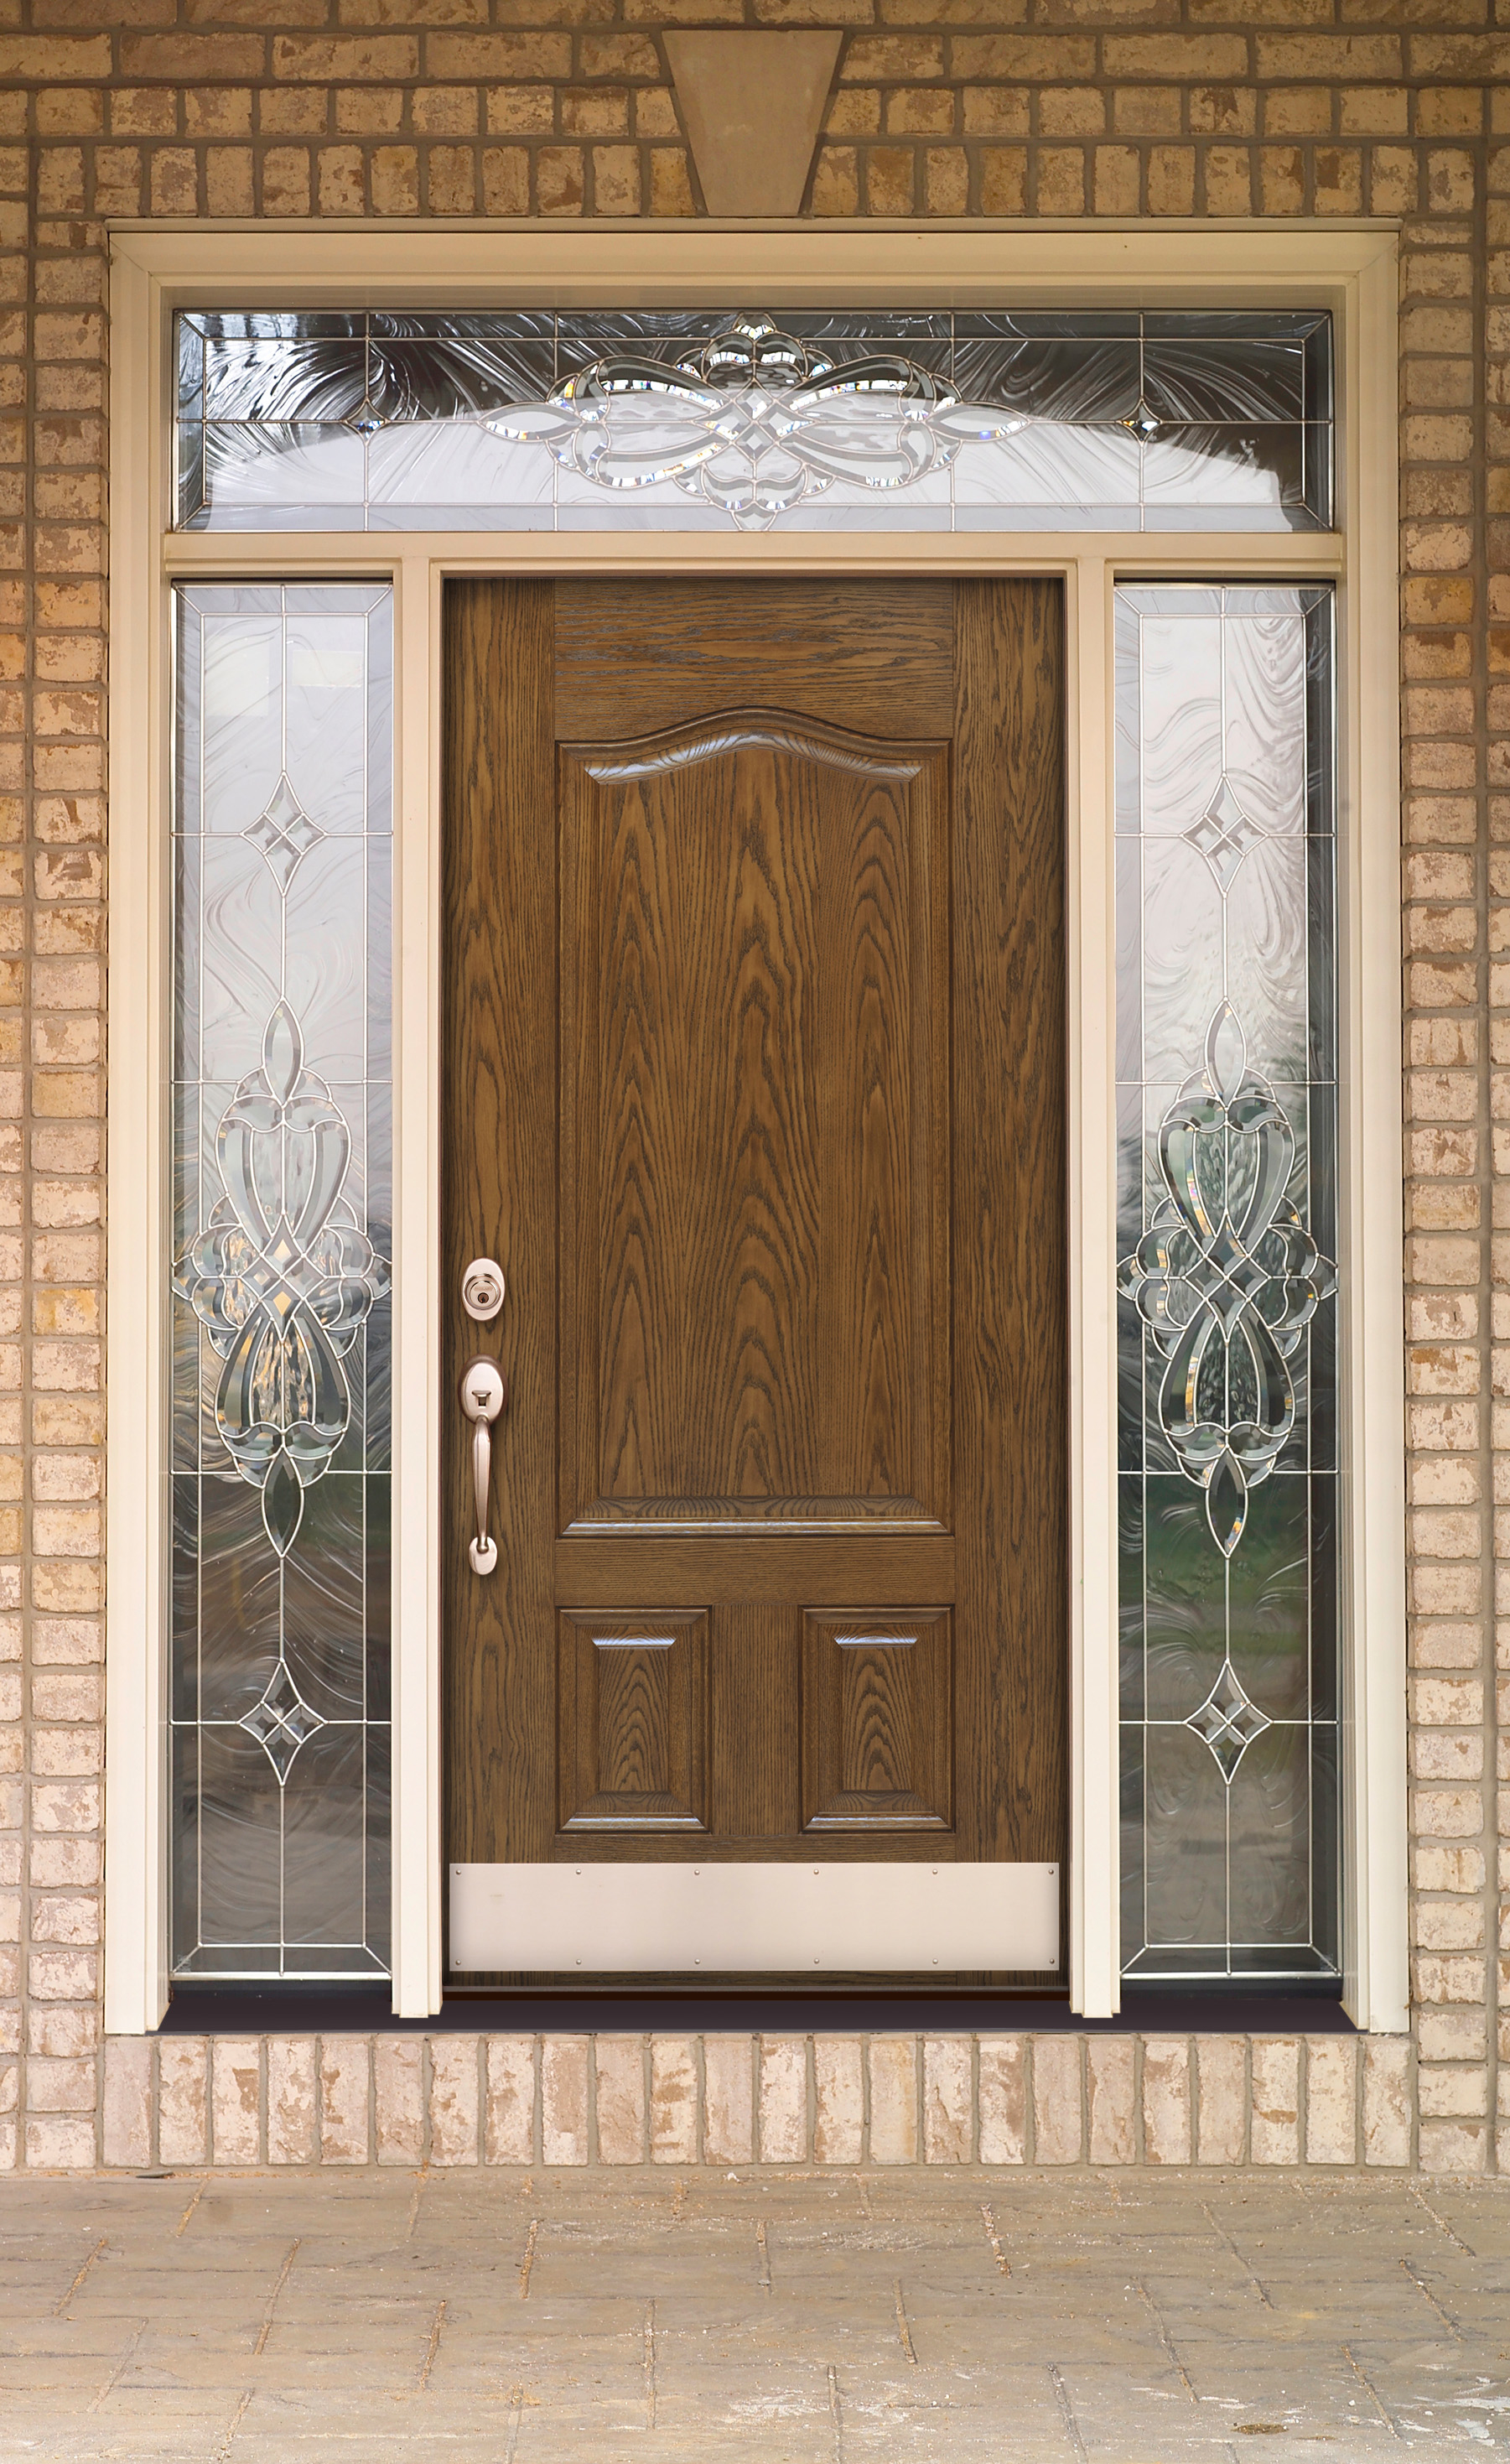 Ecoview windows doors of north alabama in huntsville al for North windows and doors